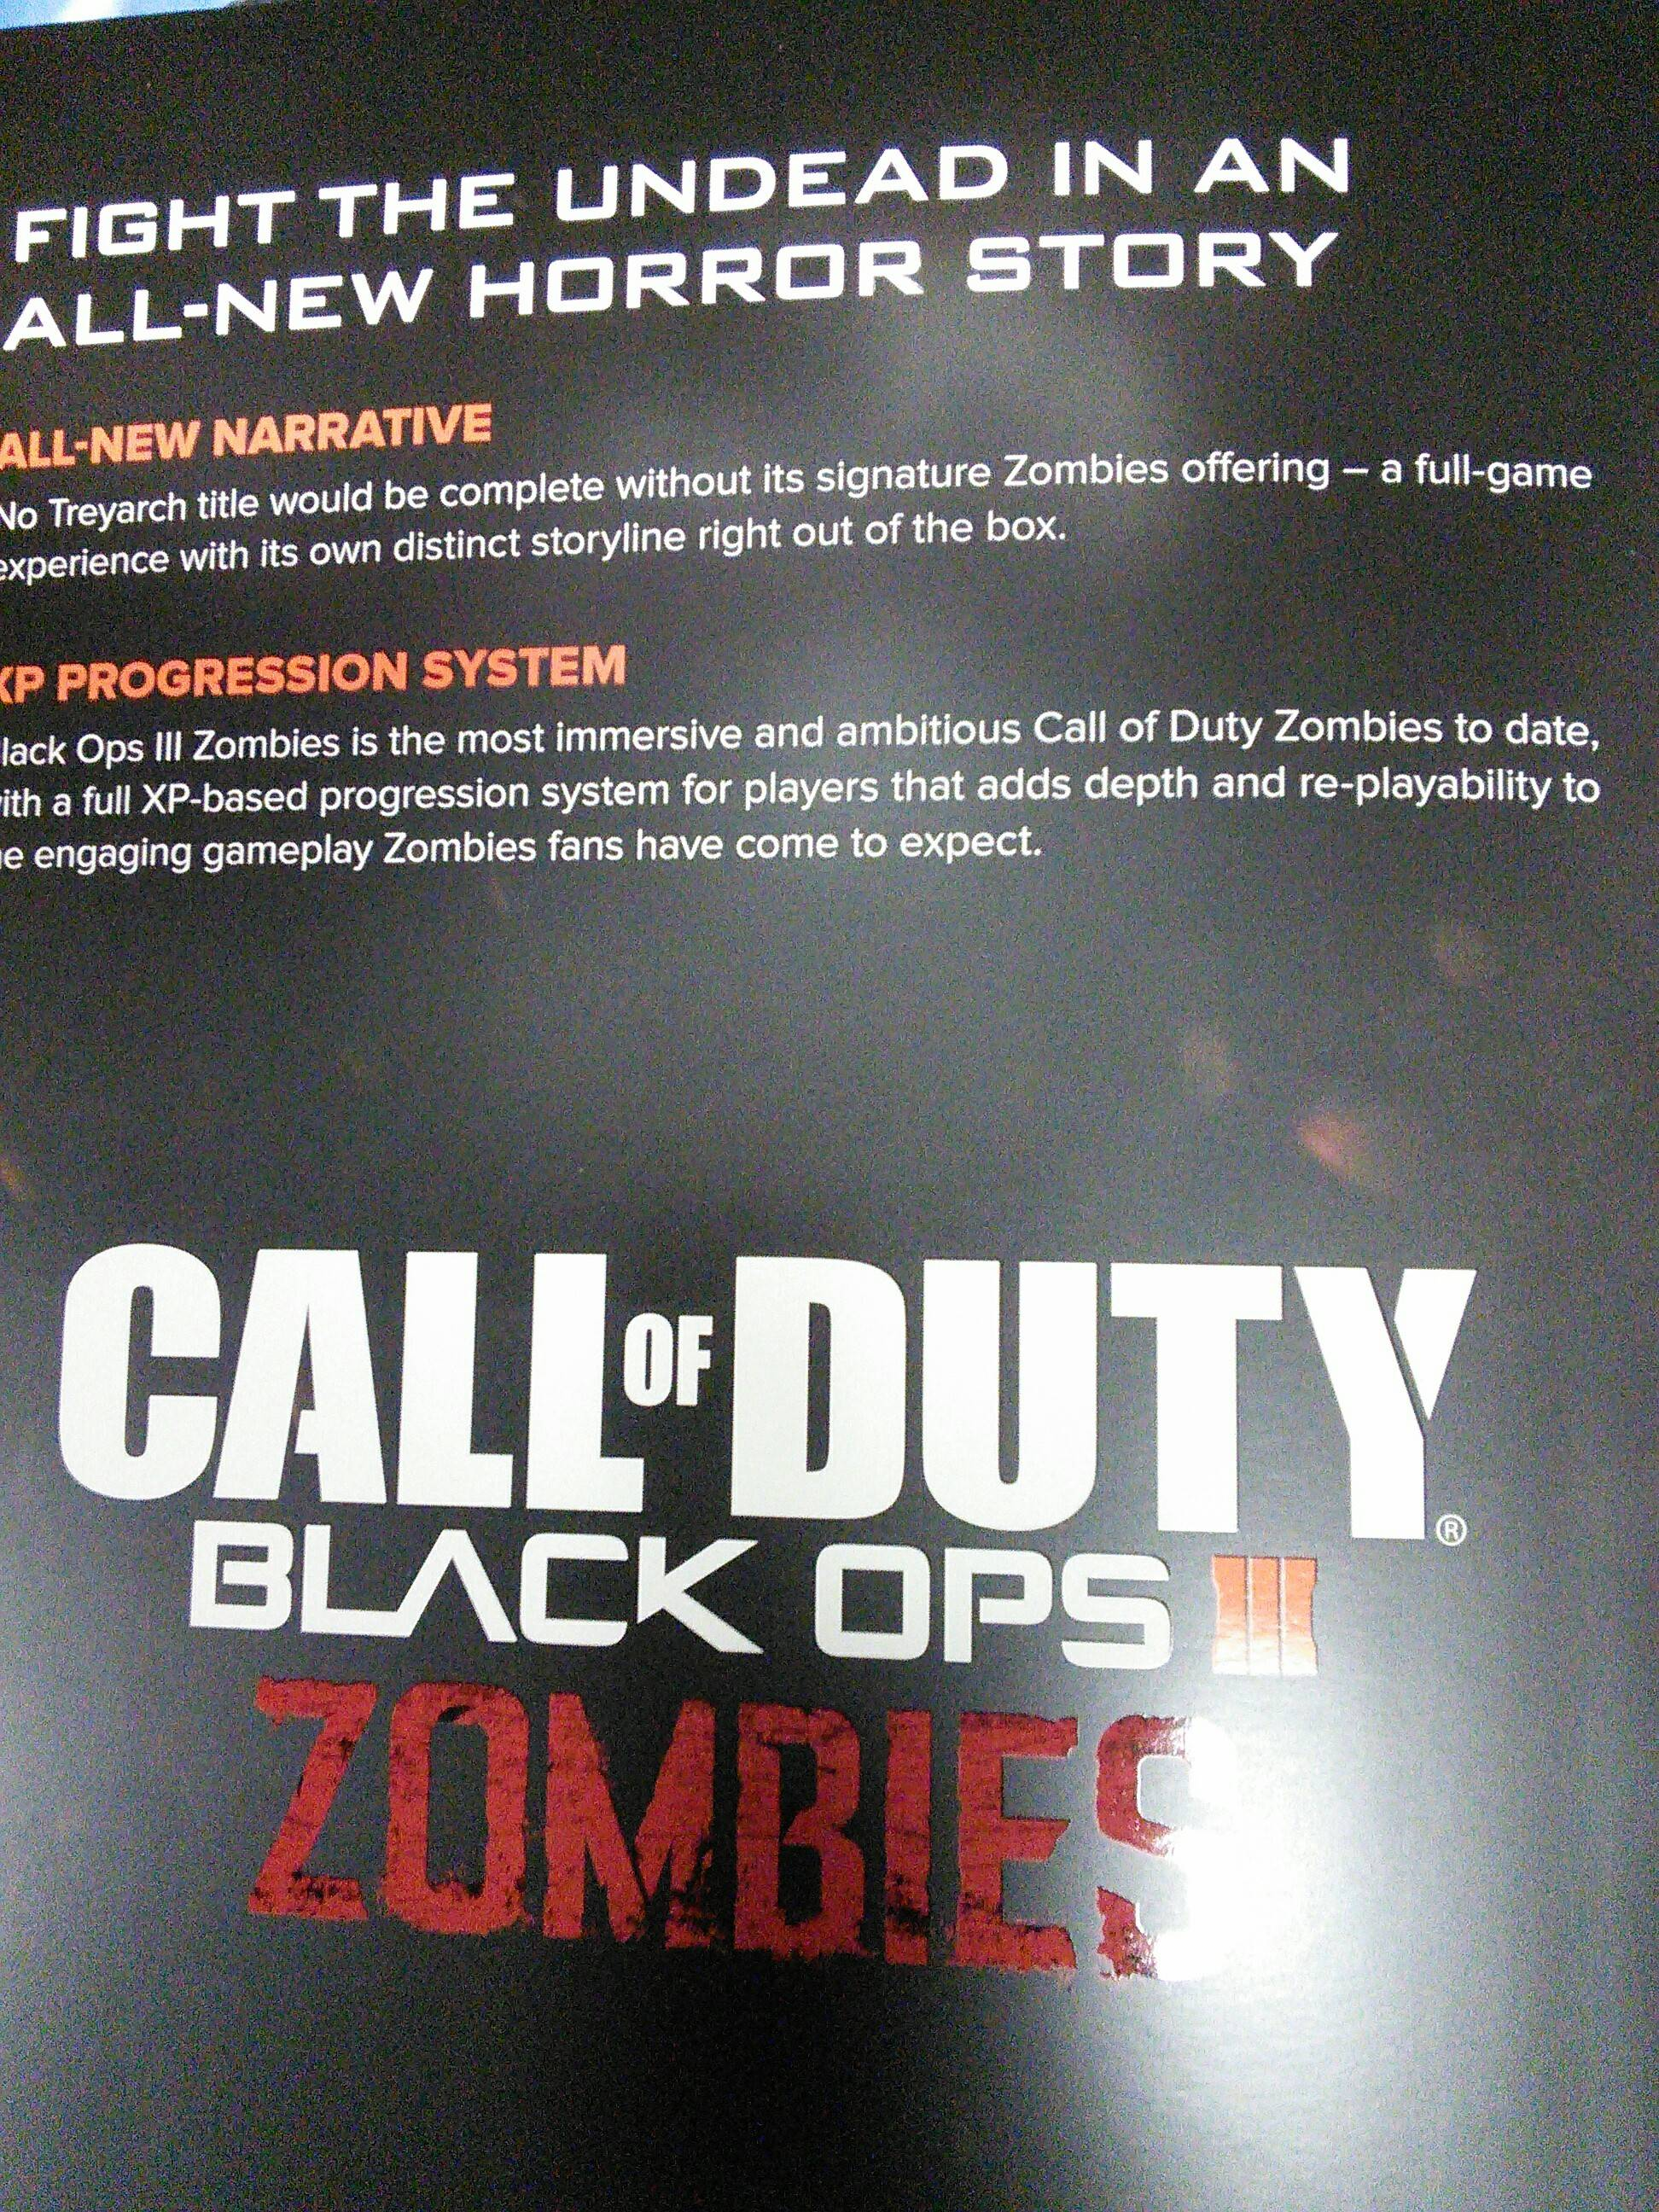 Call of Duty: Black Ops III has four-player co-op campaign